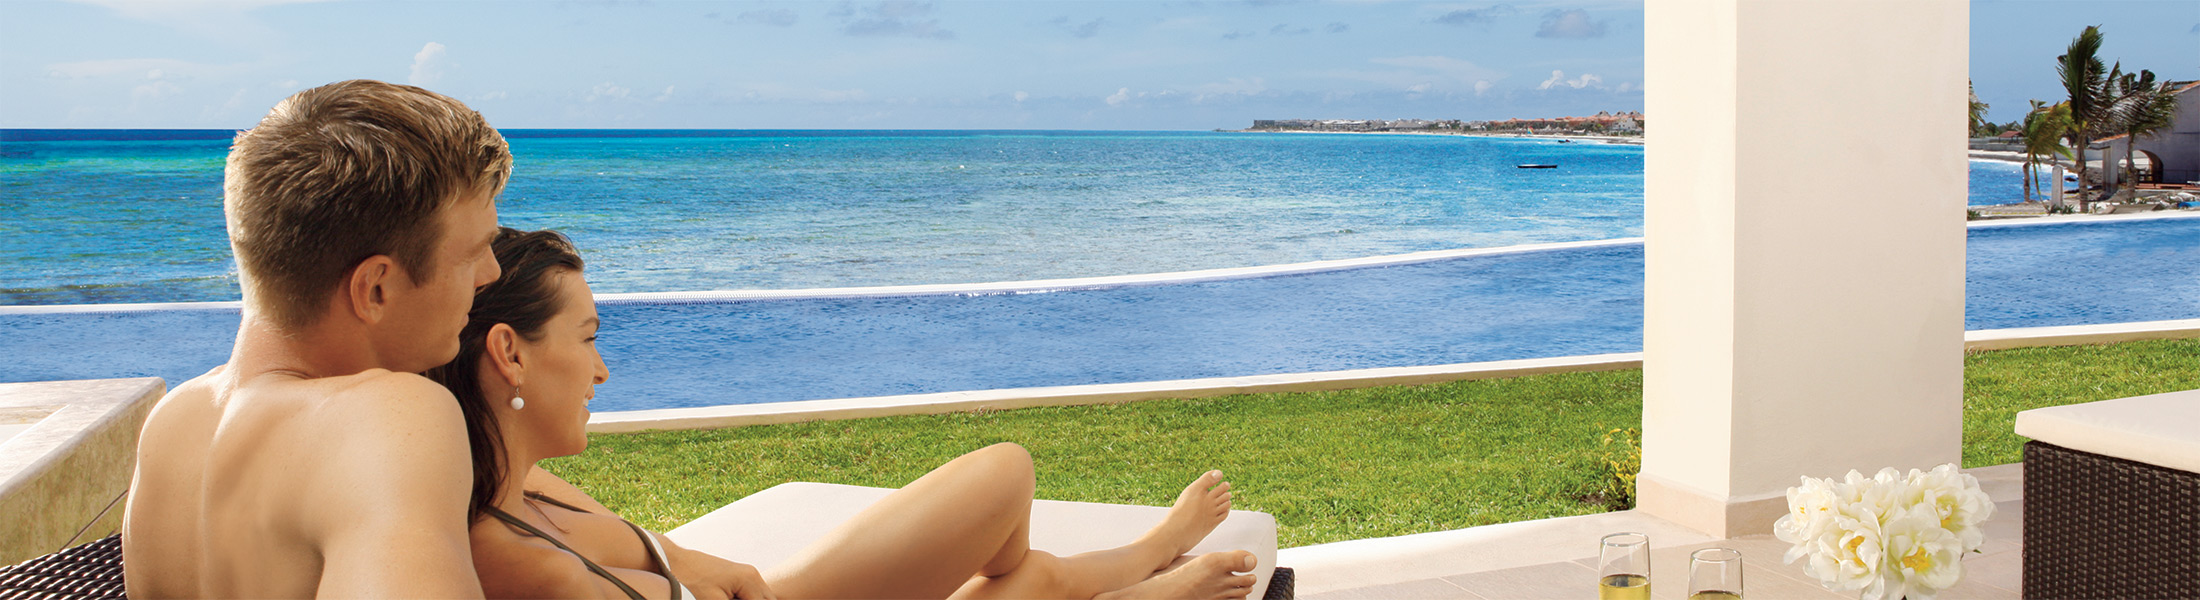 Couple on a sun lounge overlooking the ocean at Secrets Silversands Riviera